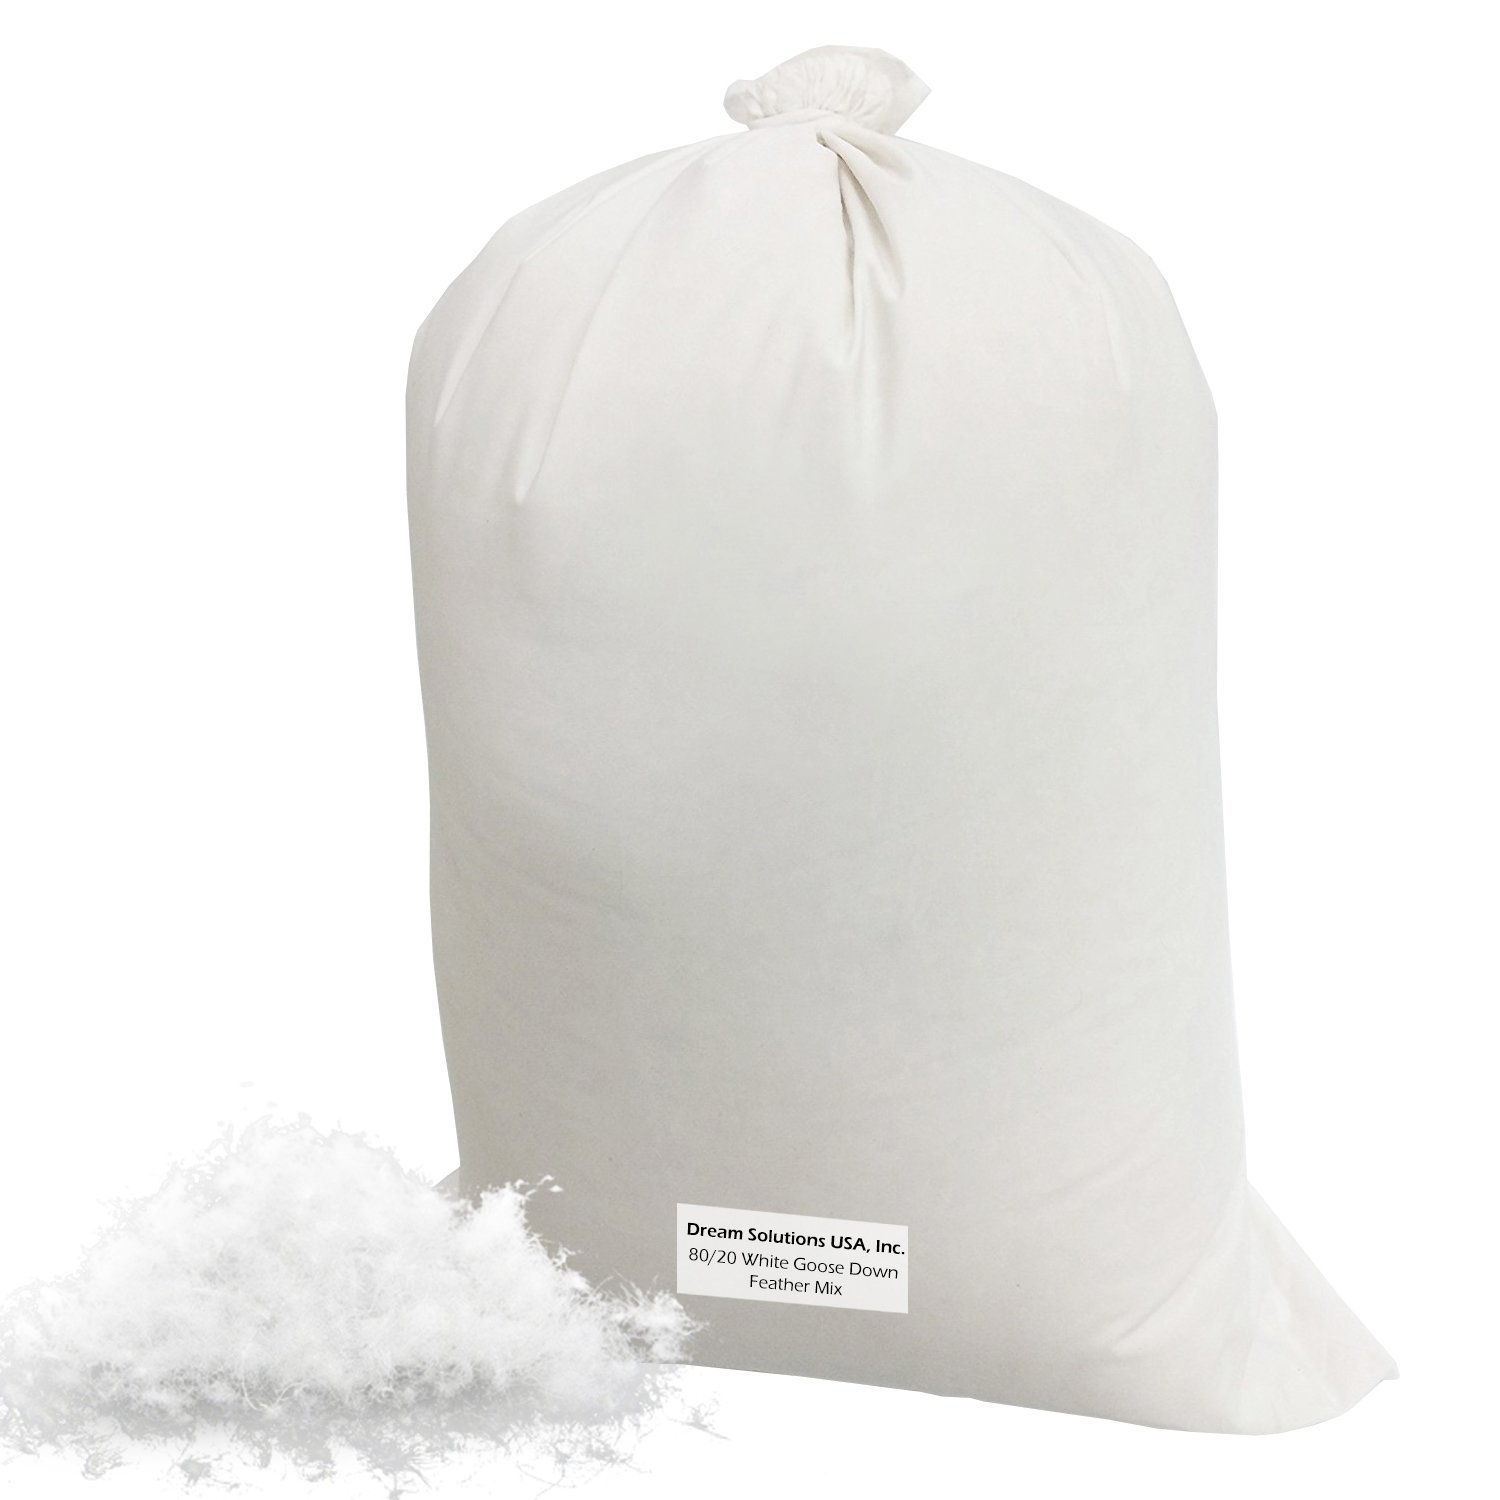 Bulk Goose Down Filling 80/20 (3/4 lb) 100% Natural White Down and Feather – Fill Stuffing Comforters, Pillows, Cushions, Jackets – Ultra Plush Hungarian Softness by Dream Solutions USA Brand GWD-3/4LB